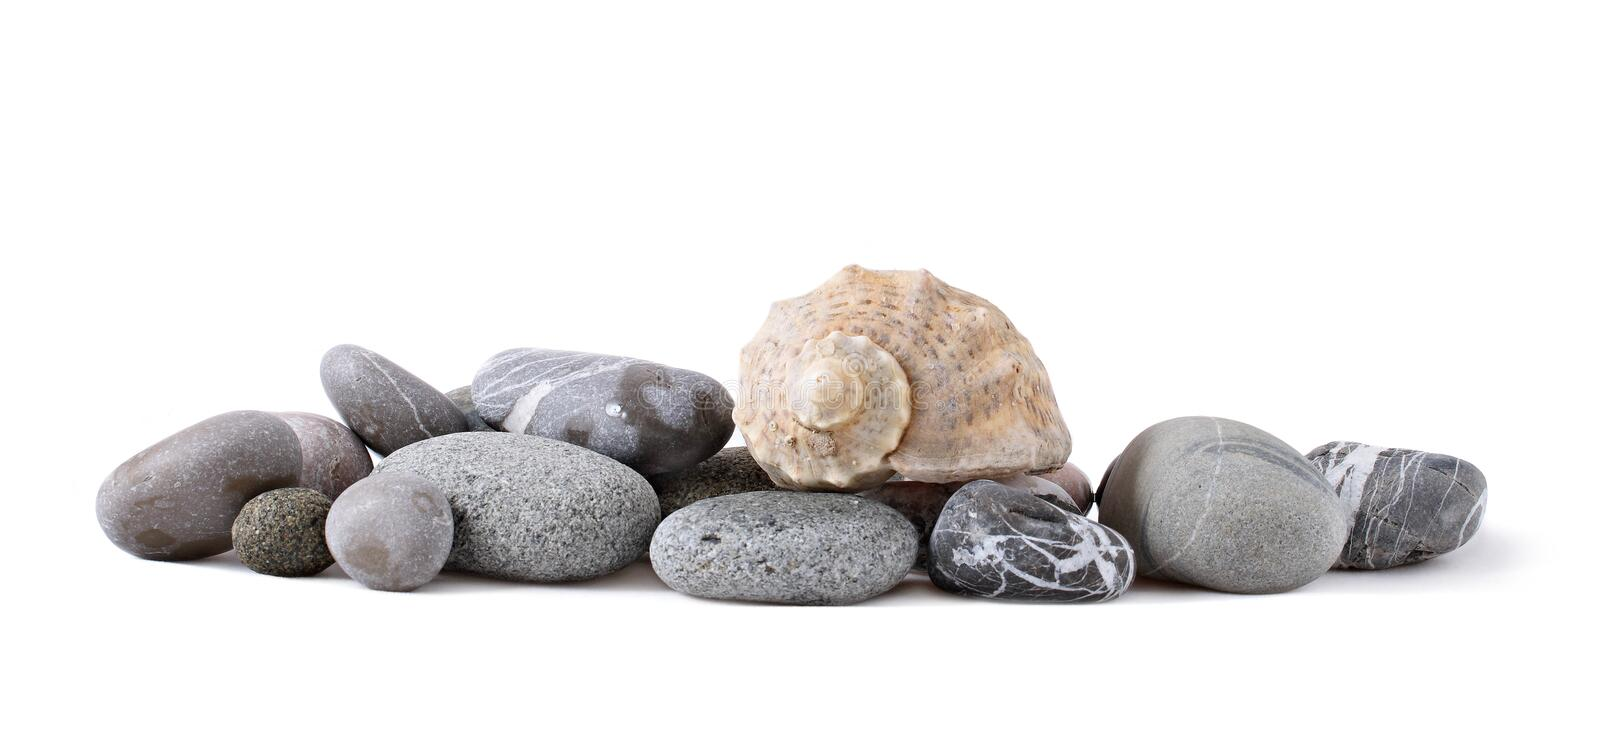 Sea shell and stones collection royalty free stock images